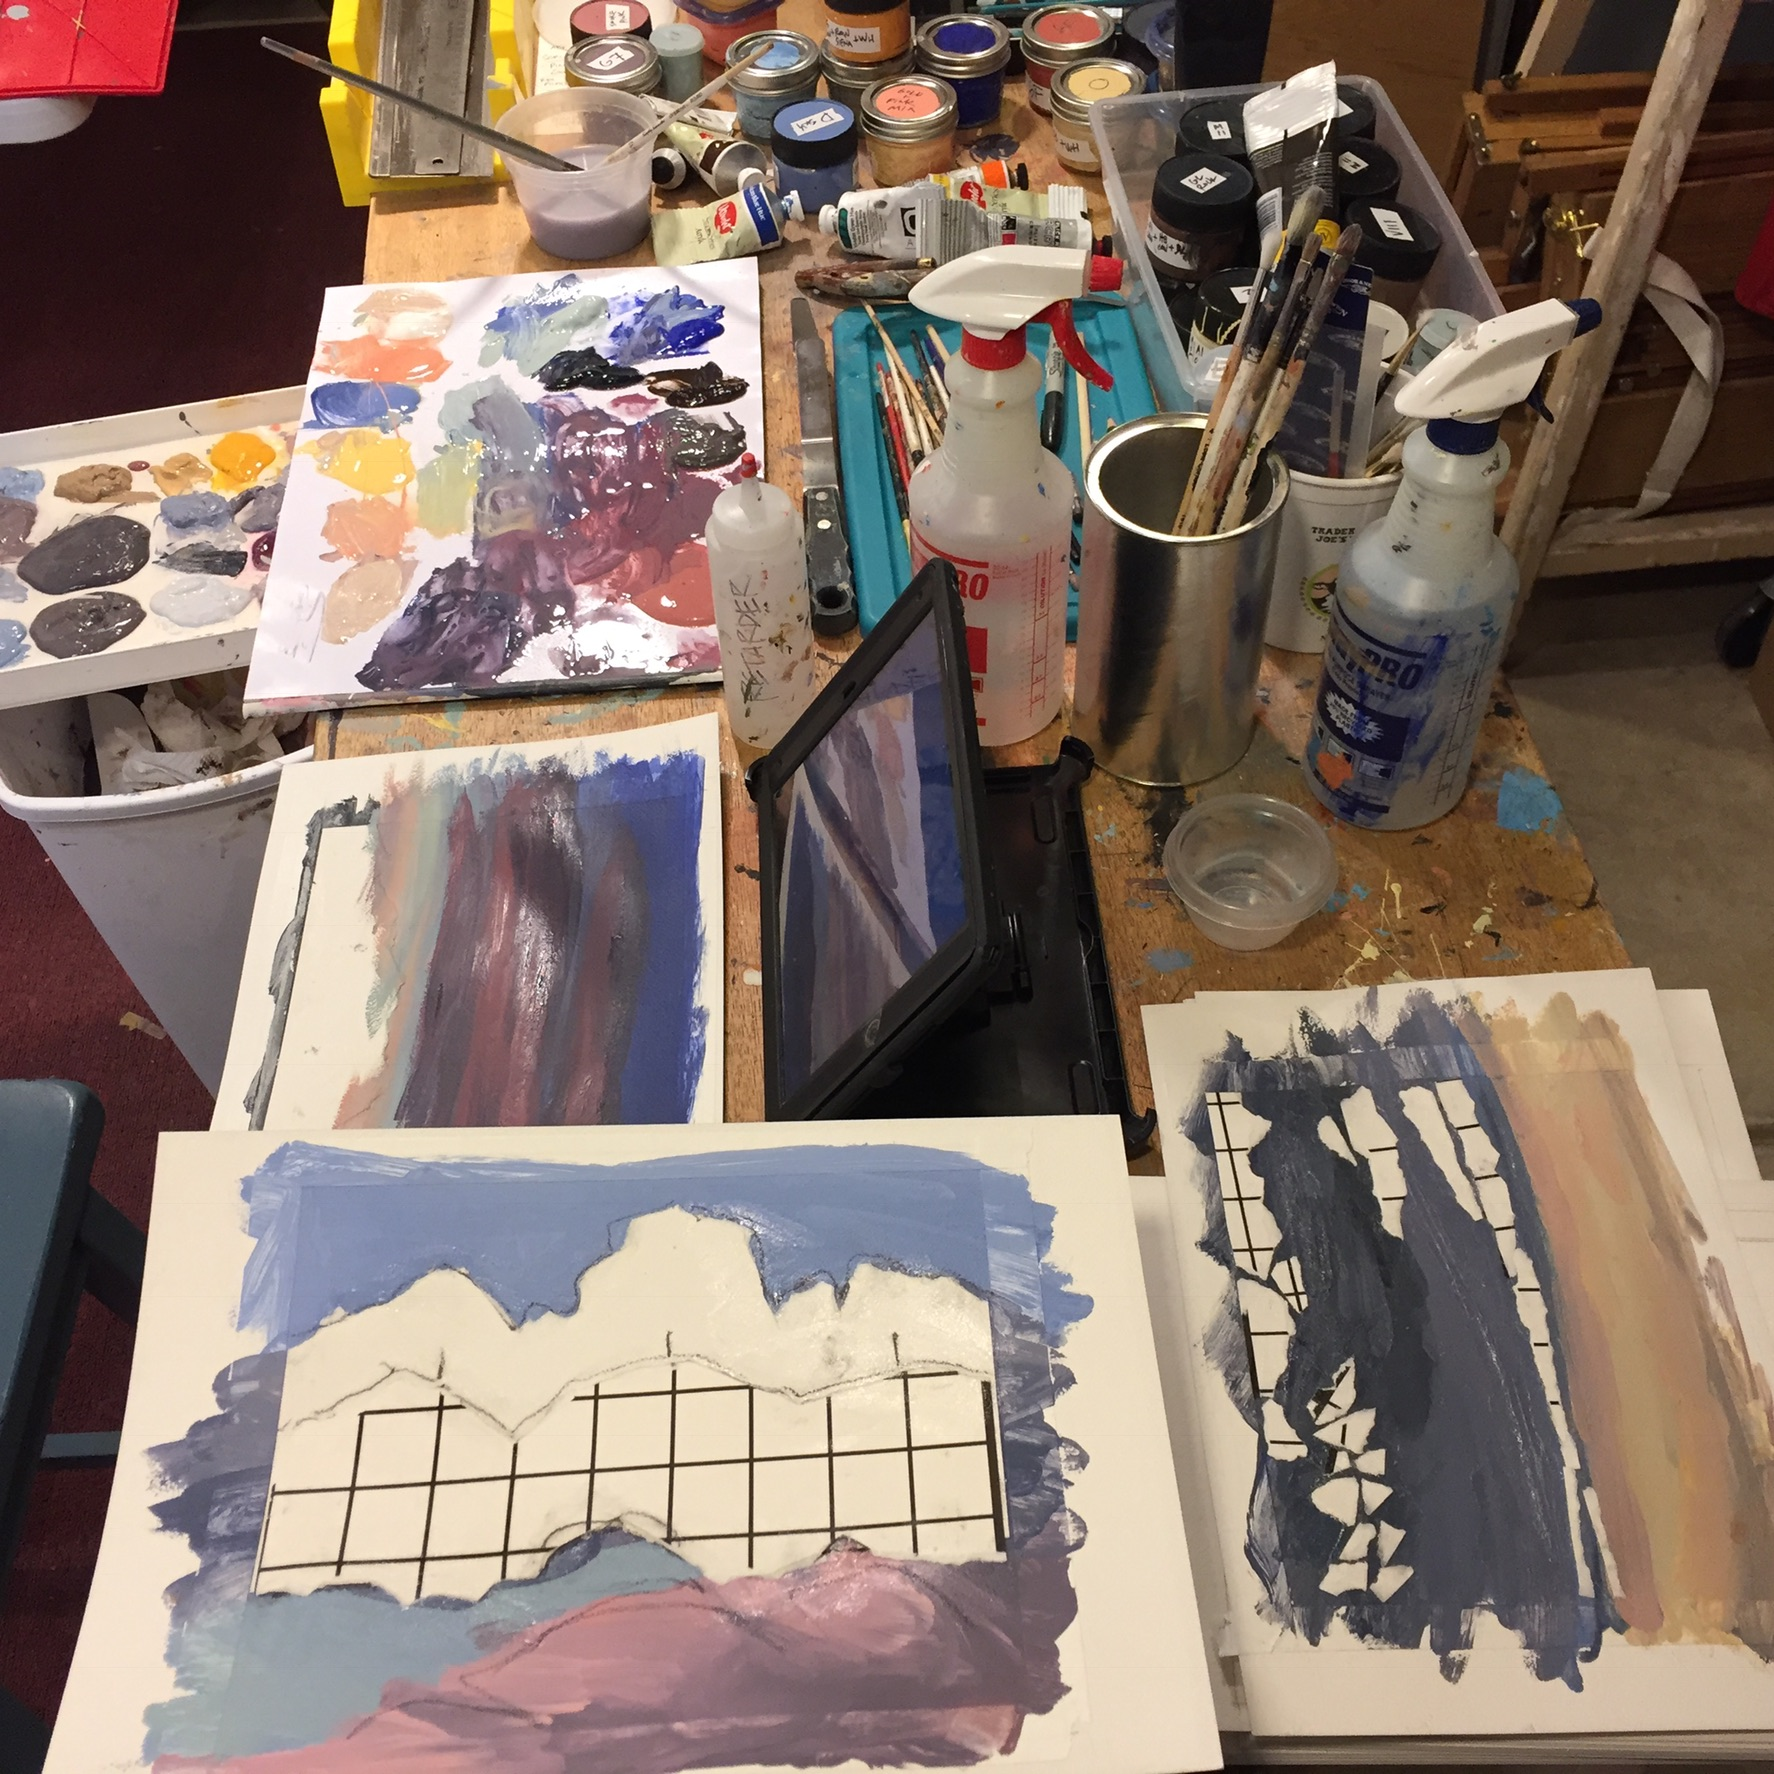 Cloud chaos on my painting table.